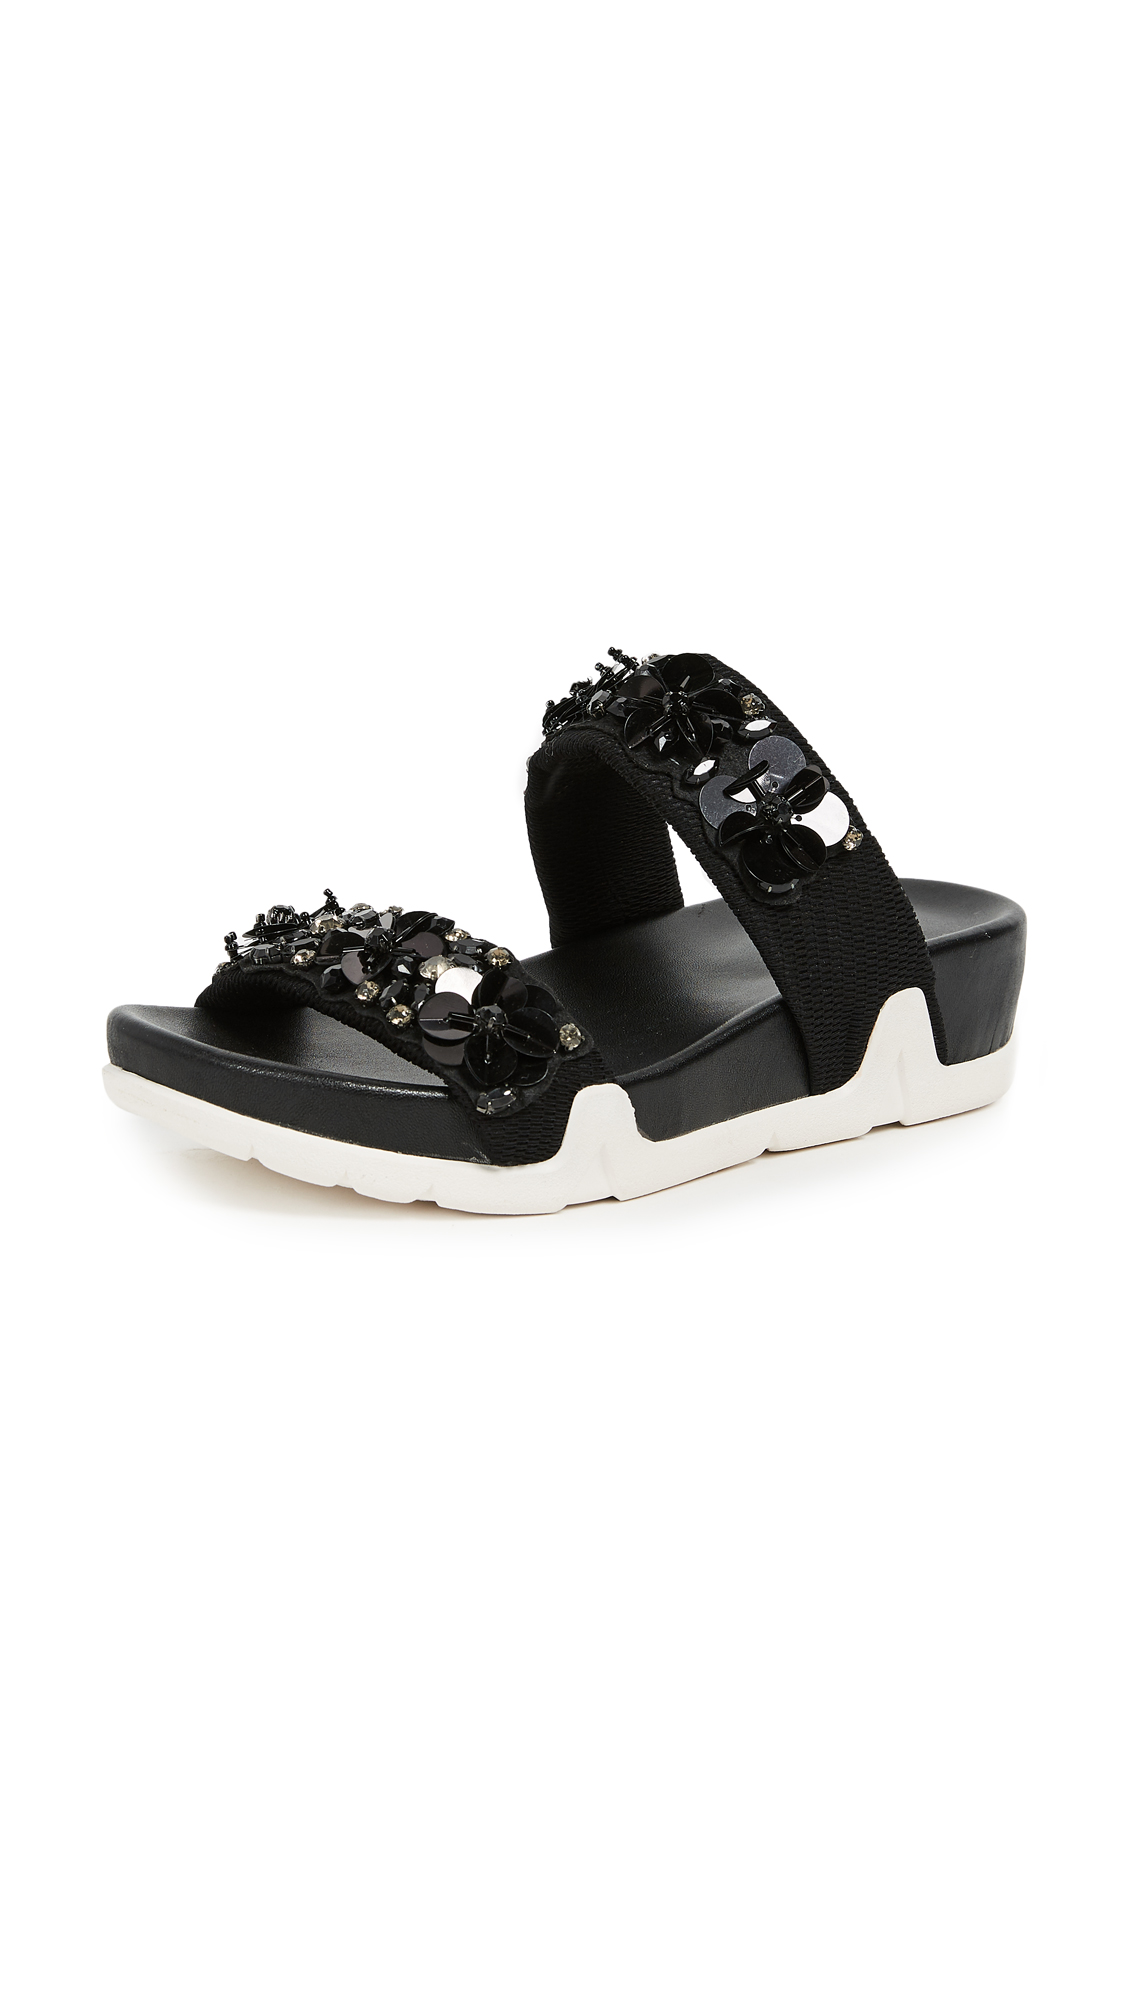 Ash Oman Flowers Sandals - Black/Black